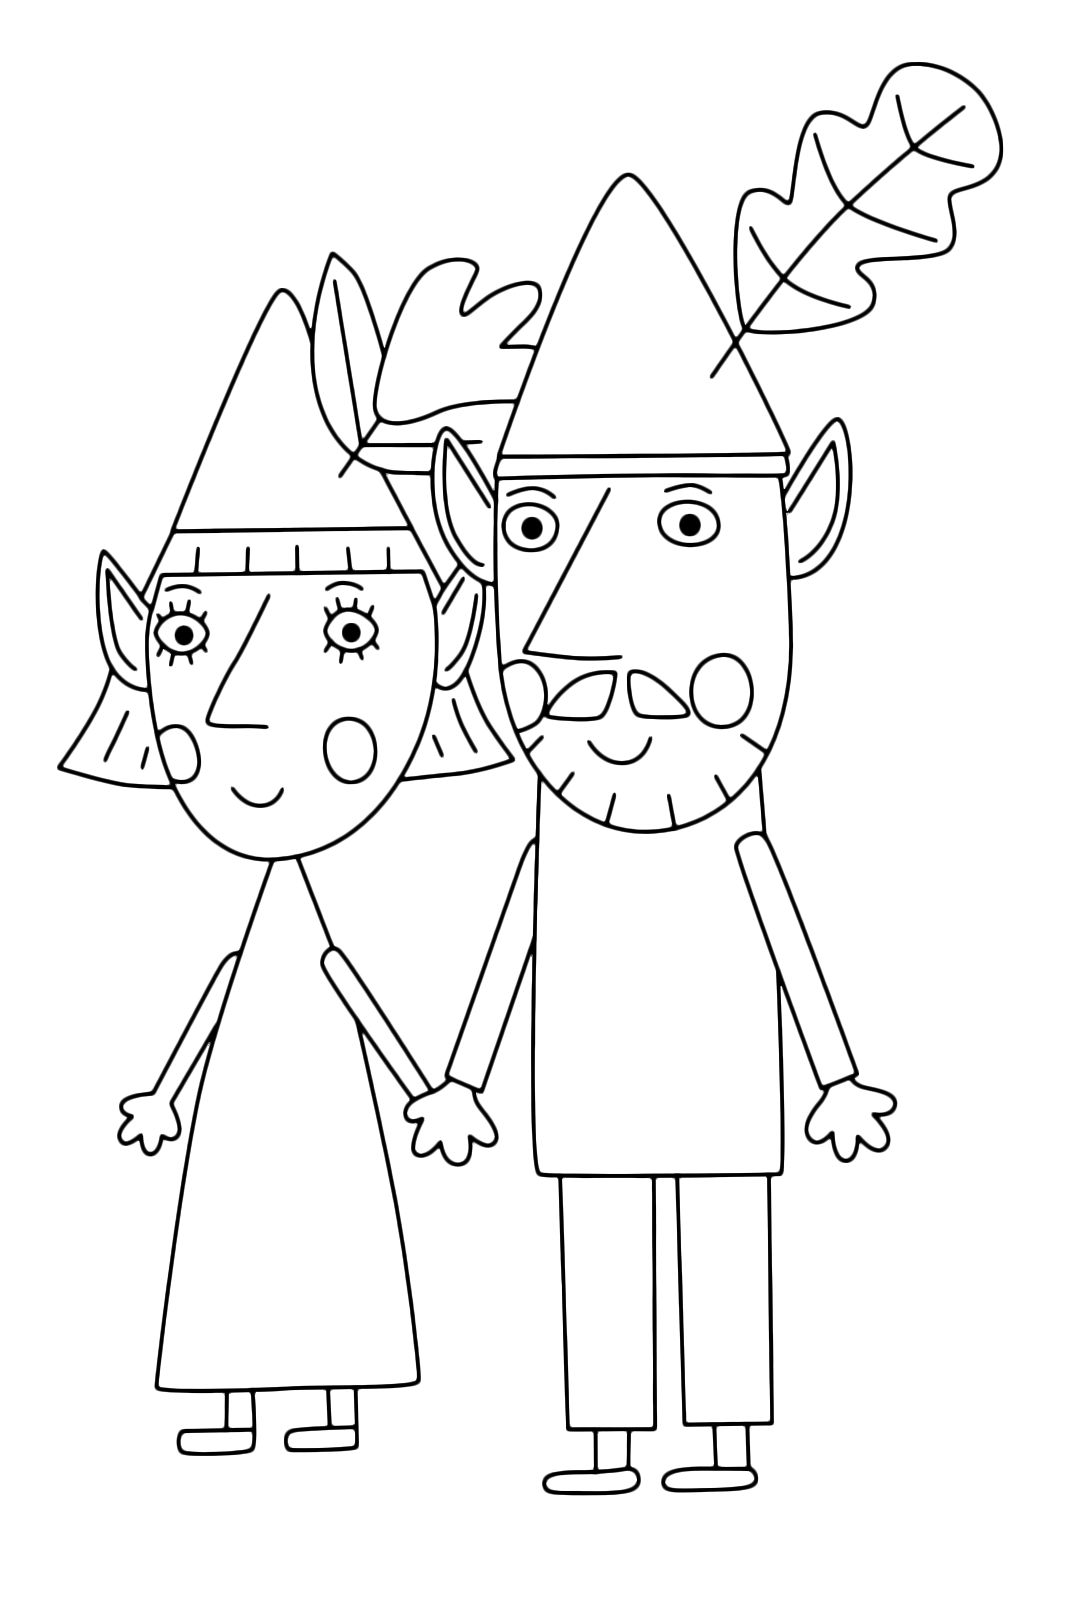 ben and holly coloring pages pdf ben holly39s little kingdom holly with her magic wand ben holly pdf pages and coloring